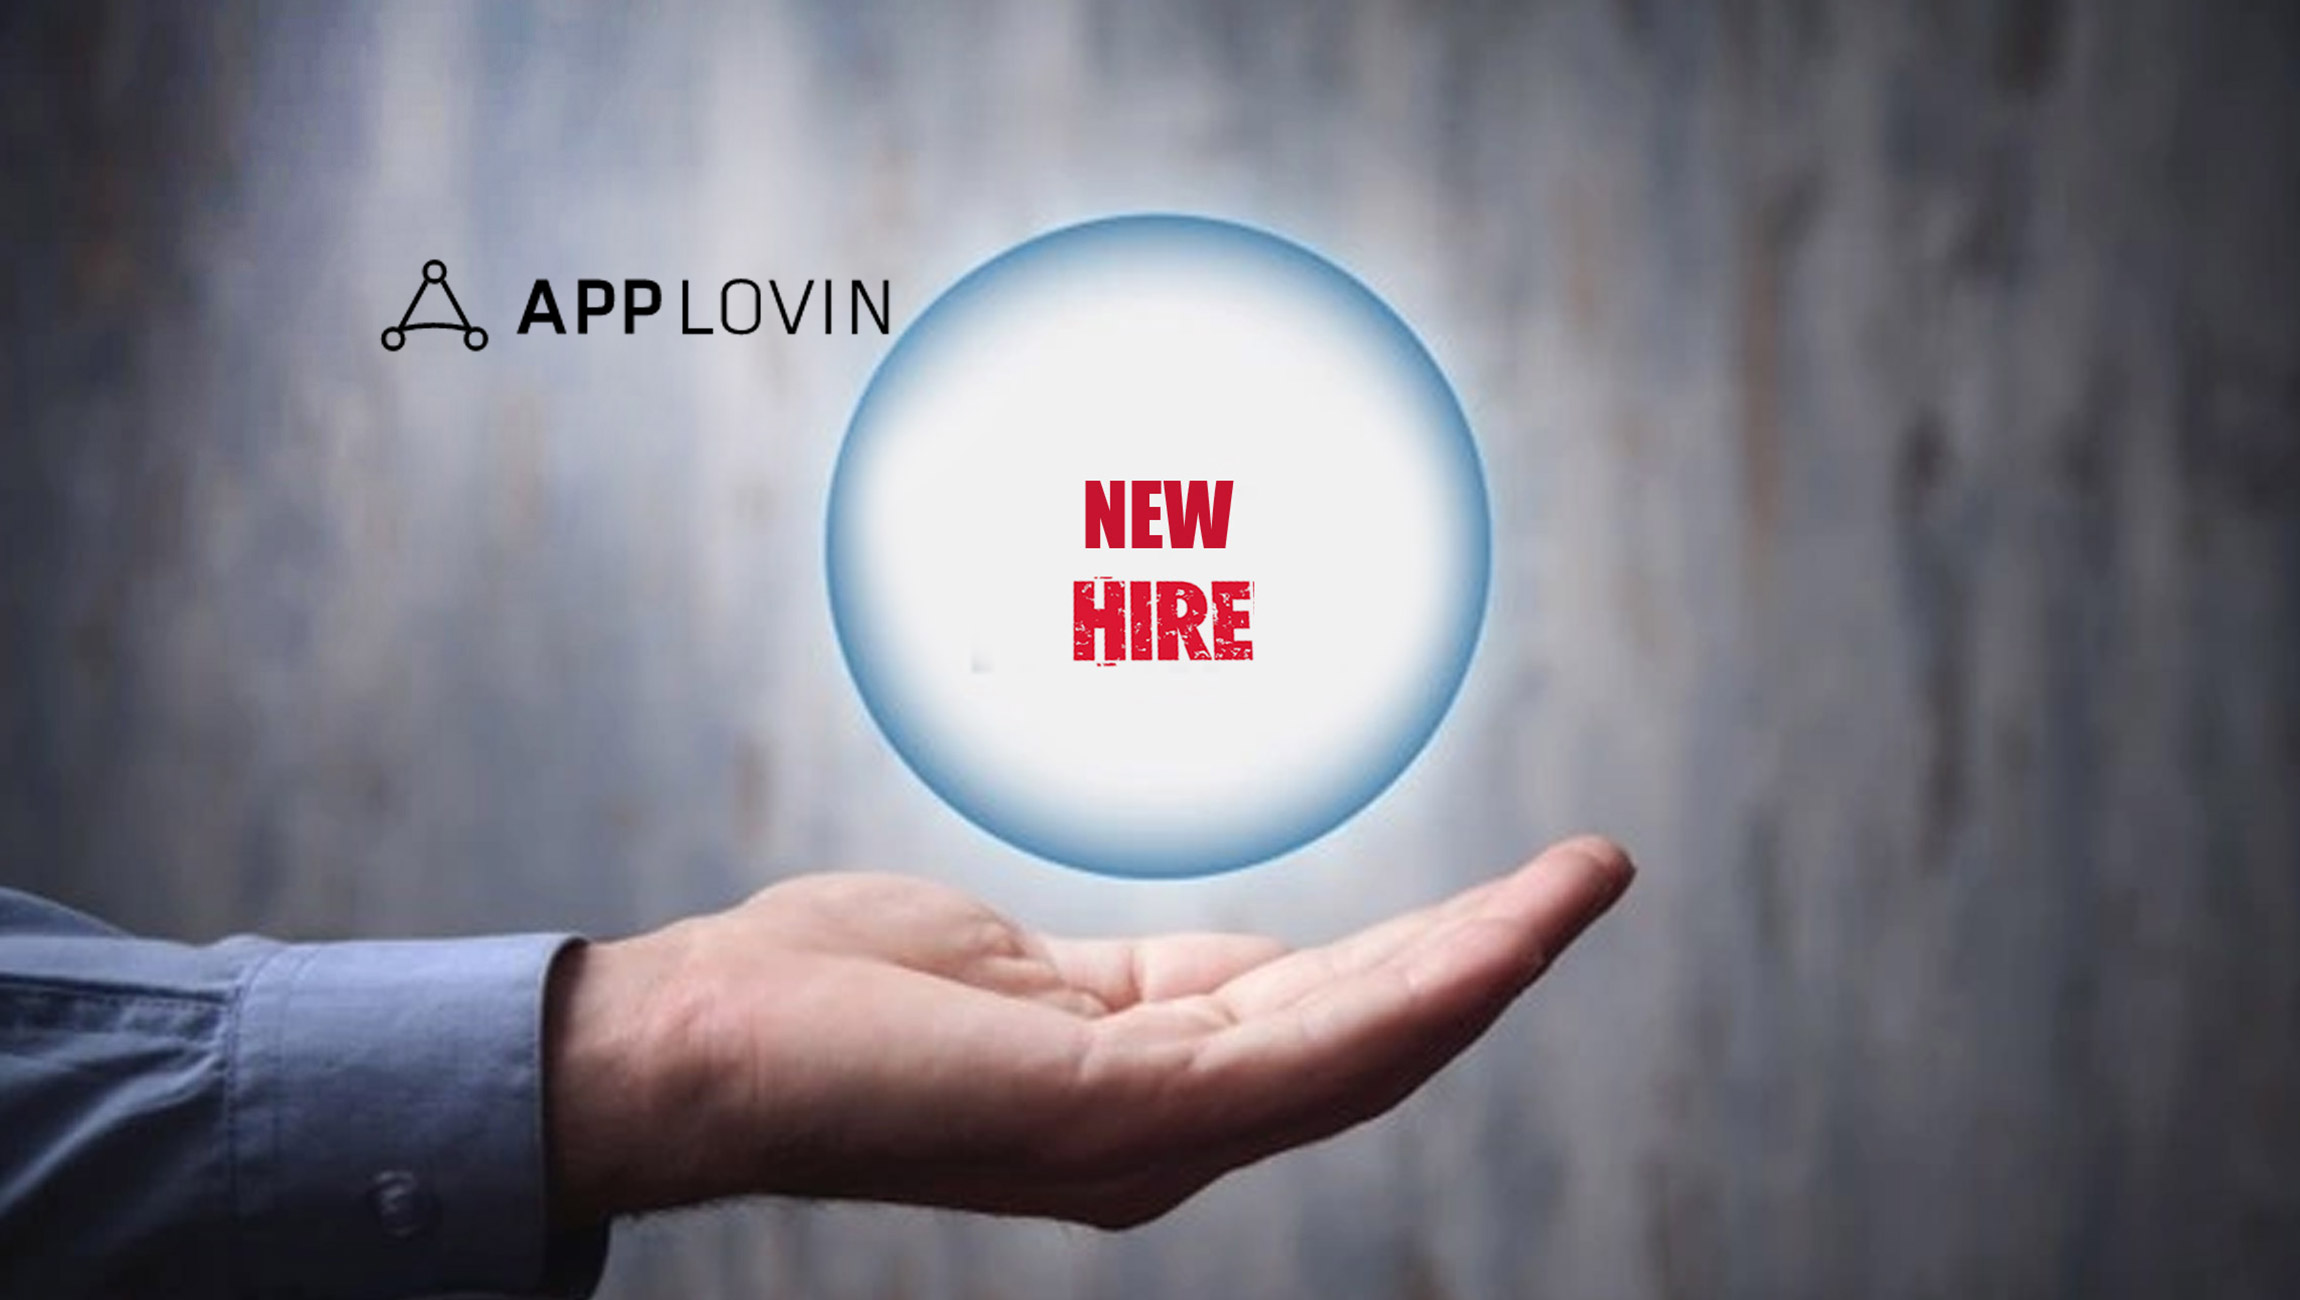 AppLovin Appoints Margo Georgiadis And Craig Billings to Its Board Of Directors